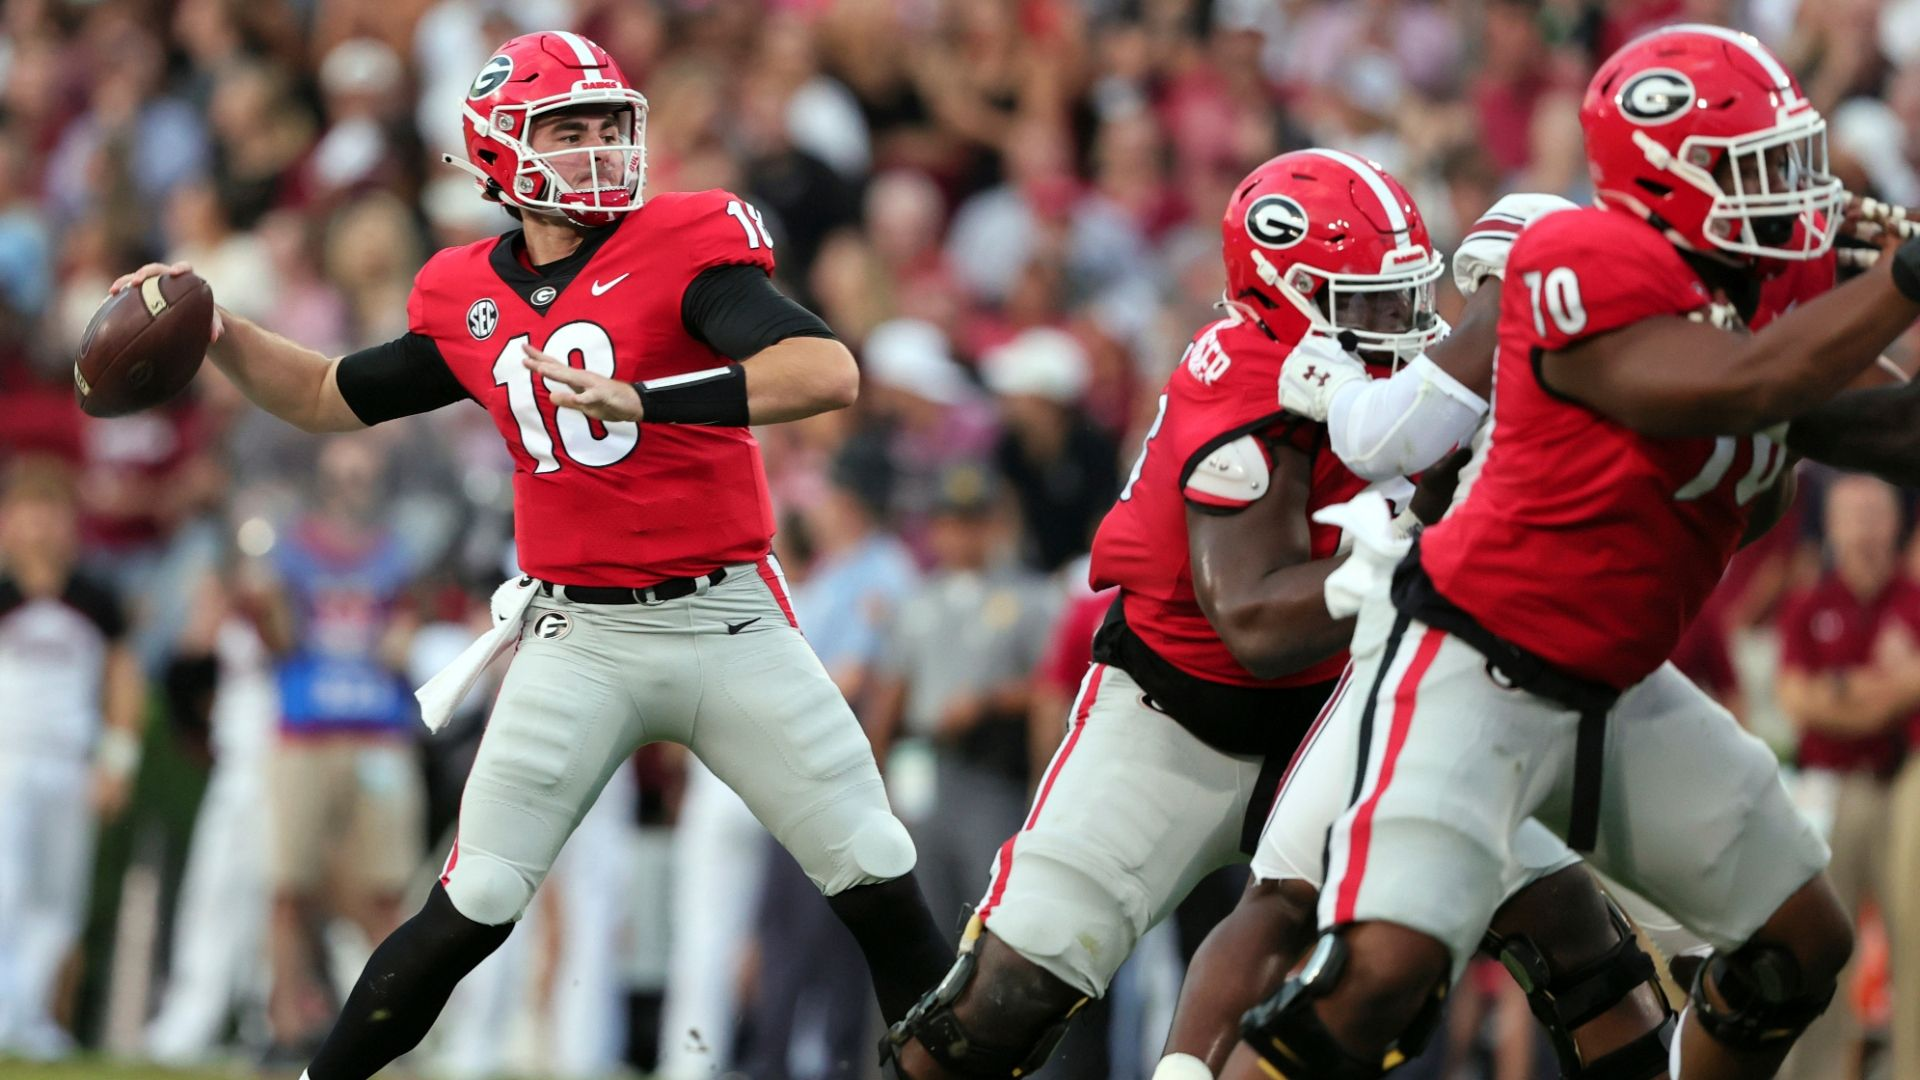 No. 2 UGA remains undefeated with rout of Gamecocks